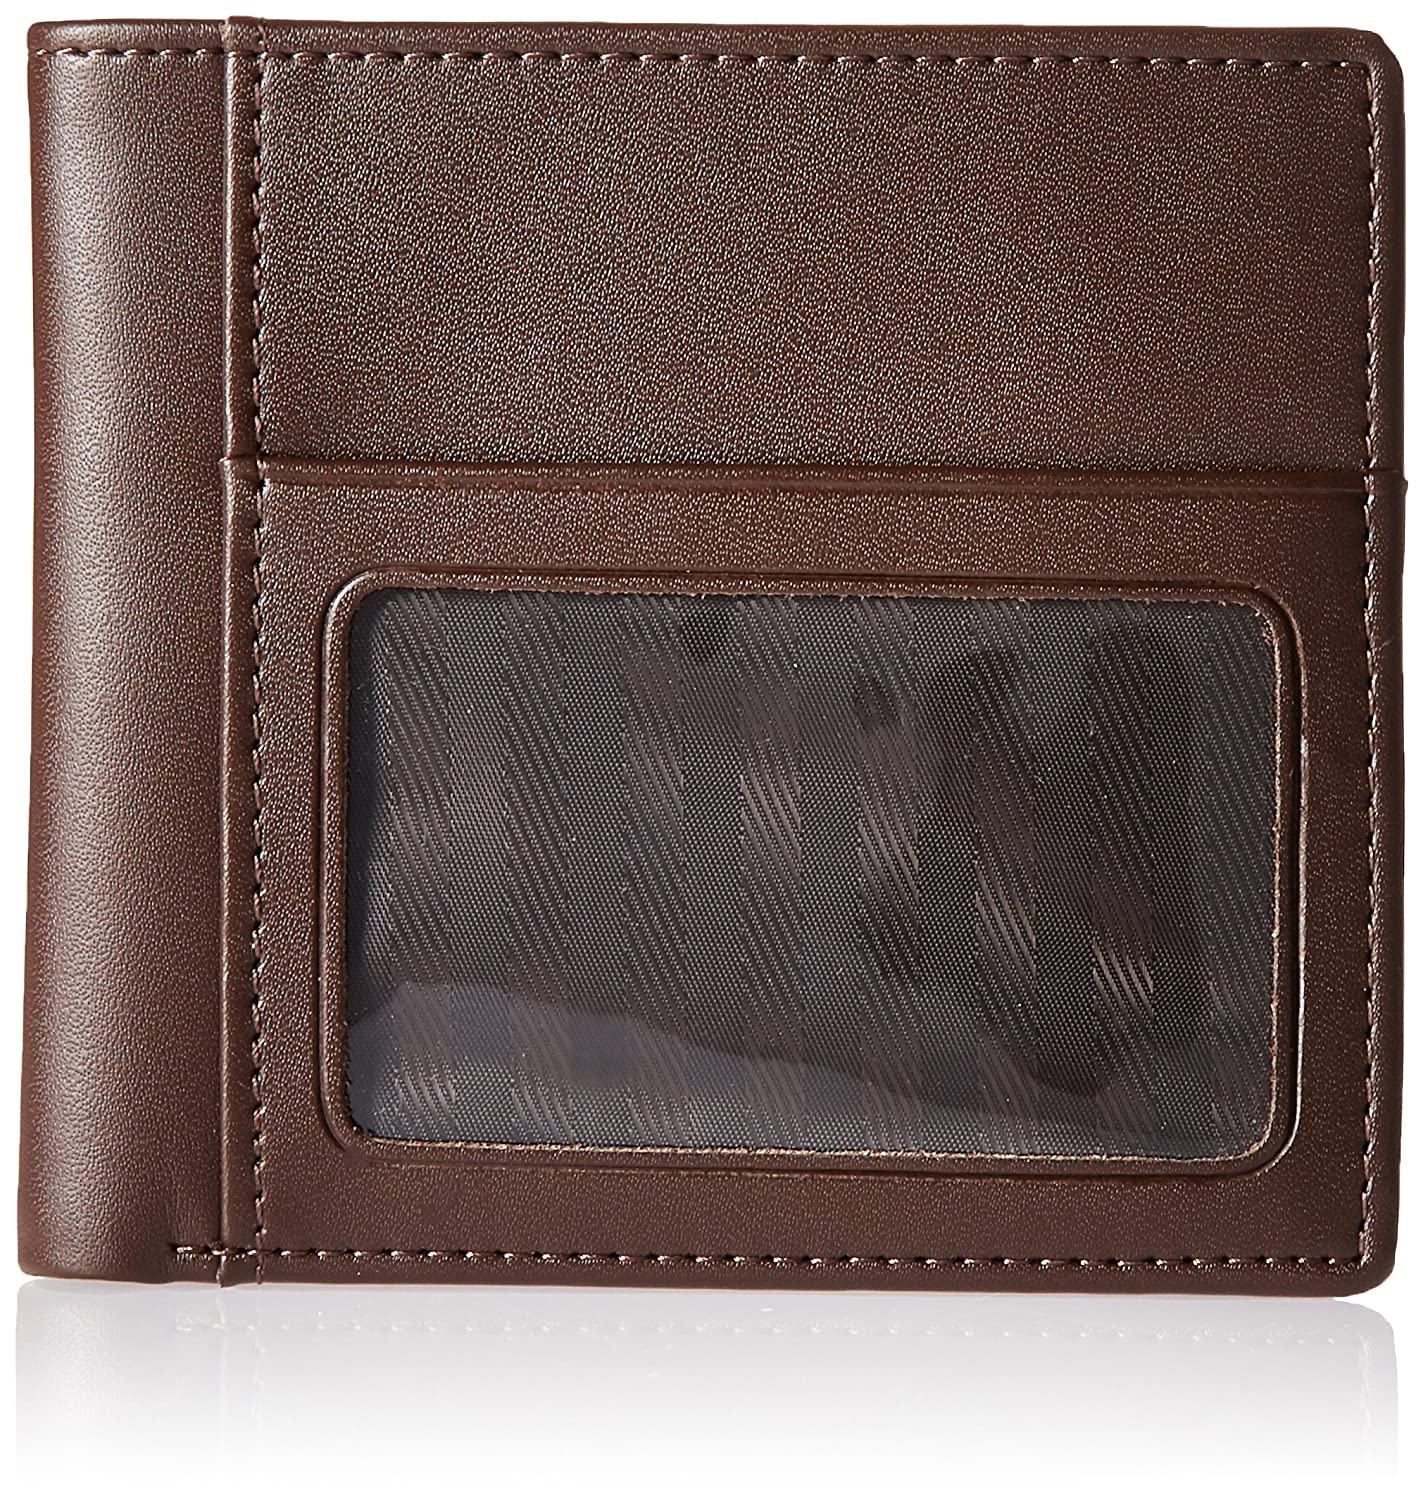 Brown Royce Leather Mens Double Id Wallet in Leather